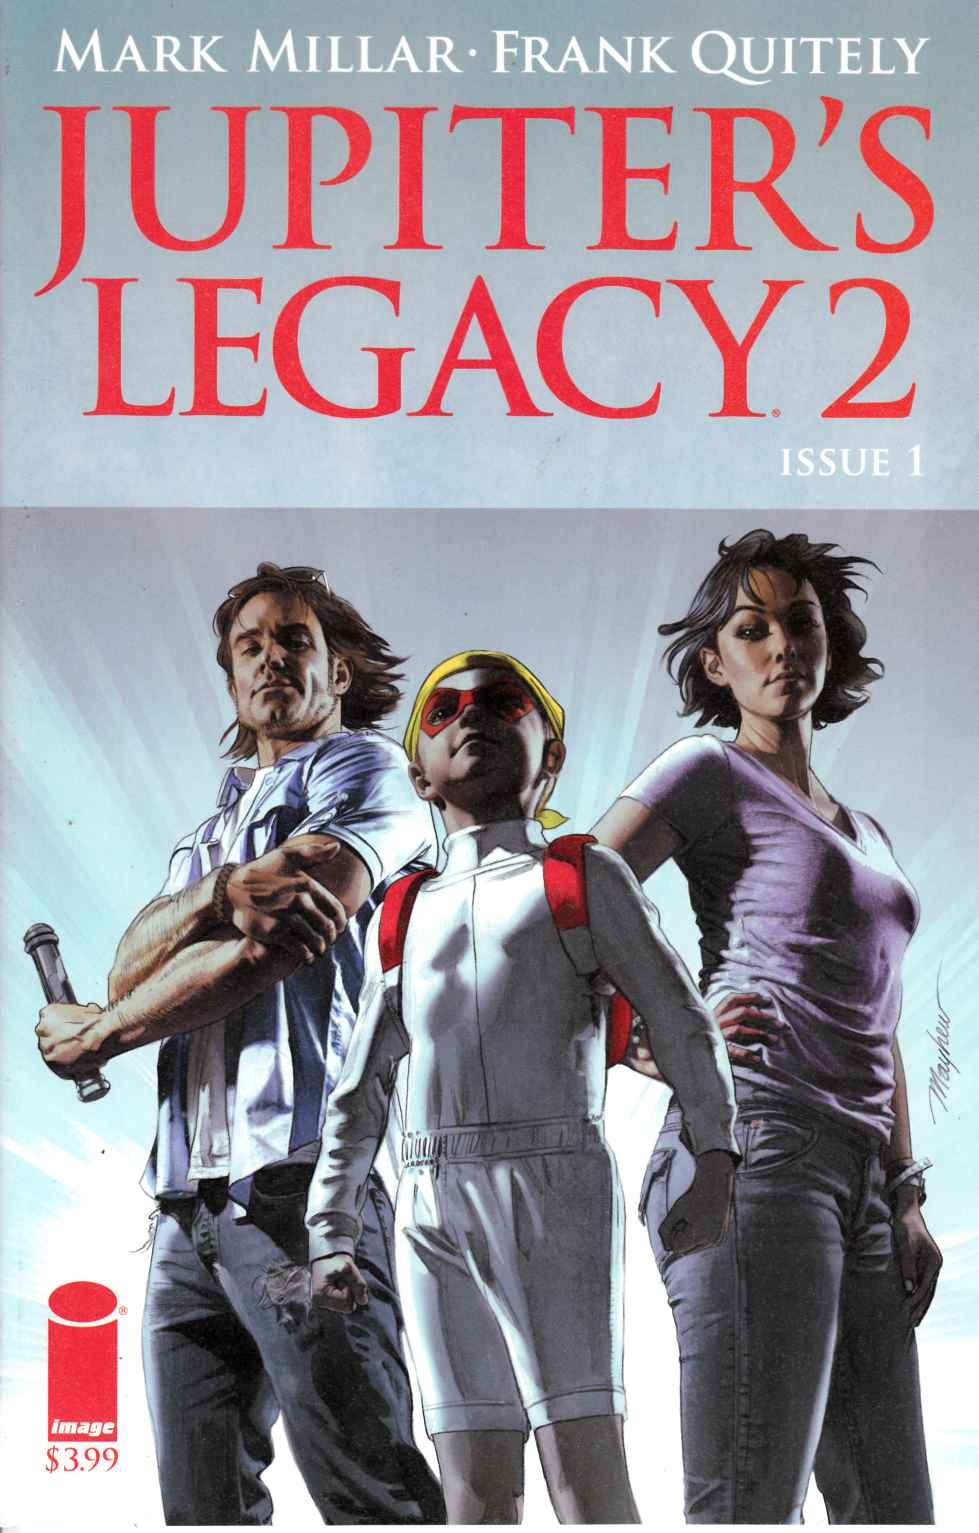 Jupiters Legacy Vol 2 #1 Cover C [Image Comic] THUMBNAIL